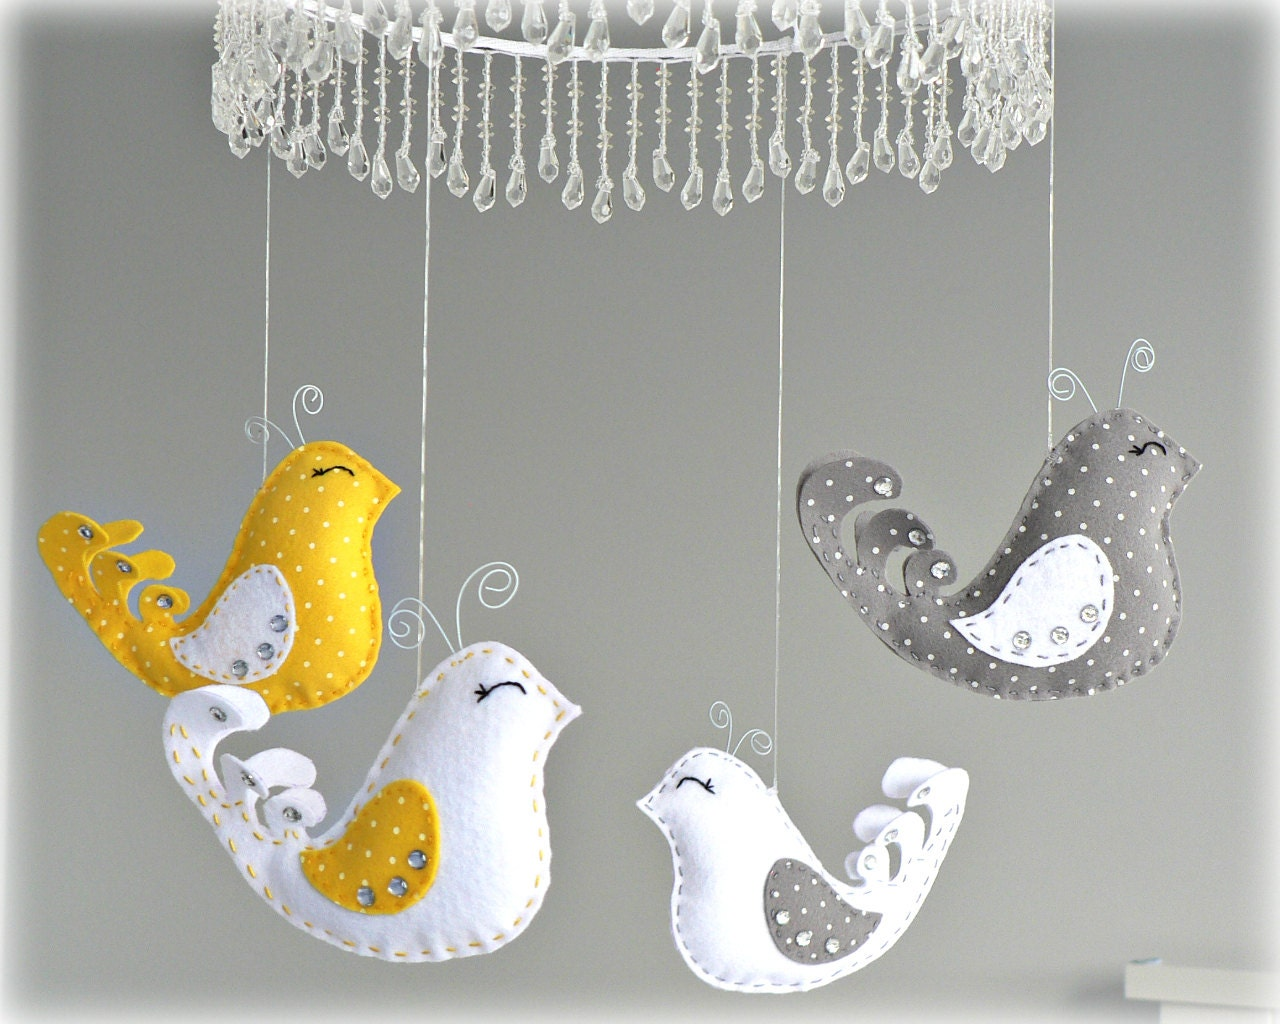 Bird mobile - baby mobile - You pick your colors - yellow, gray and white - polka dot felt - nursery decor - LullabyMobiles